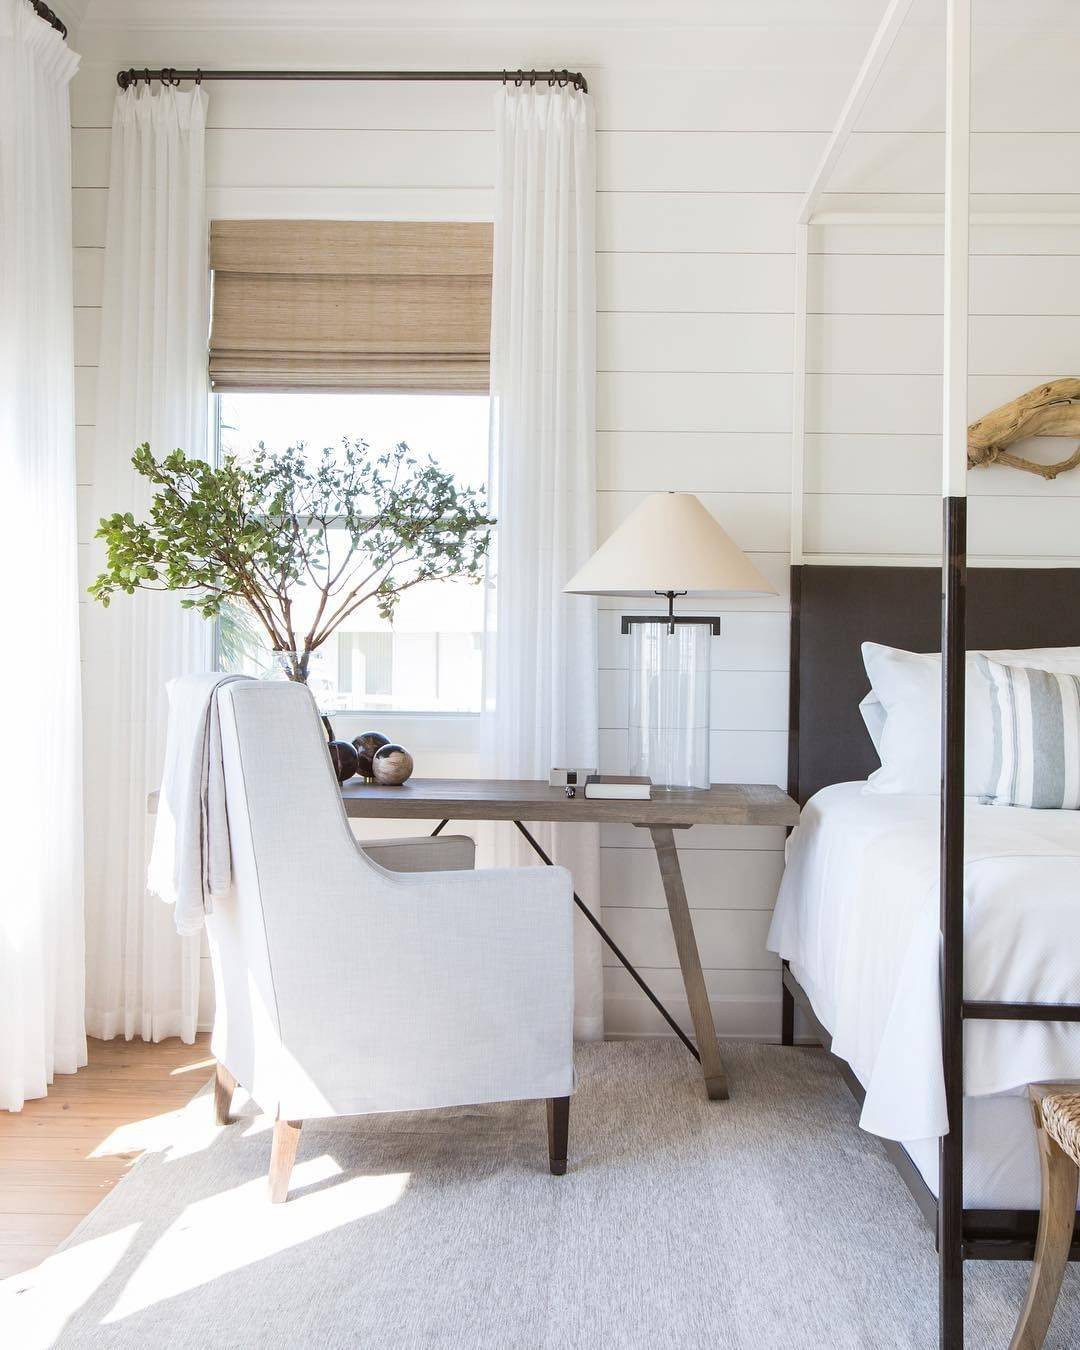 Style Me Pretty Living On Instagram The Last Day Of The Year Prompts A Lo Window Treatments Bedroom Farmhouse Window Treatments Window Treatments Living Room